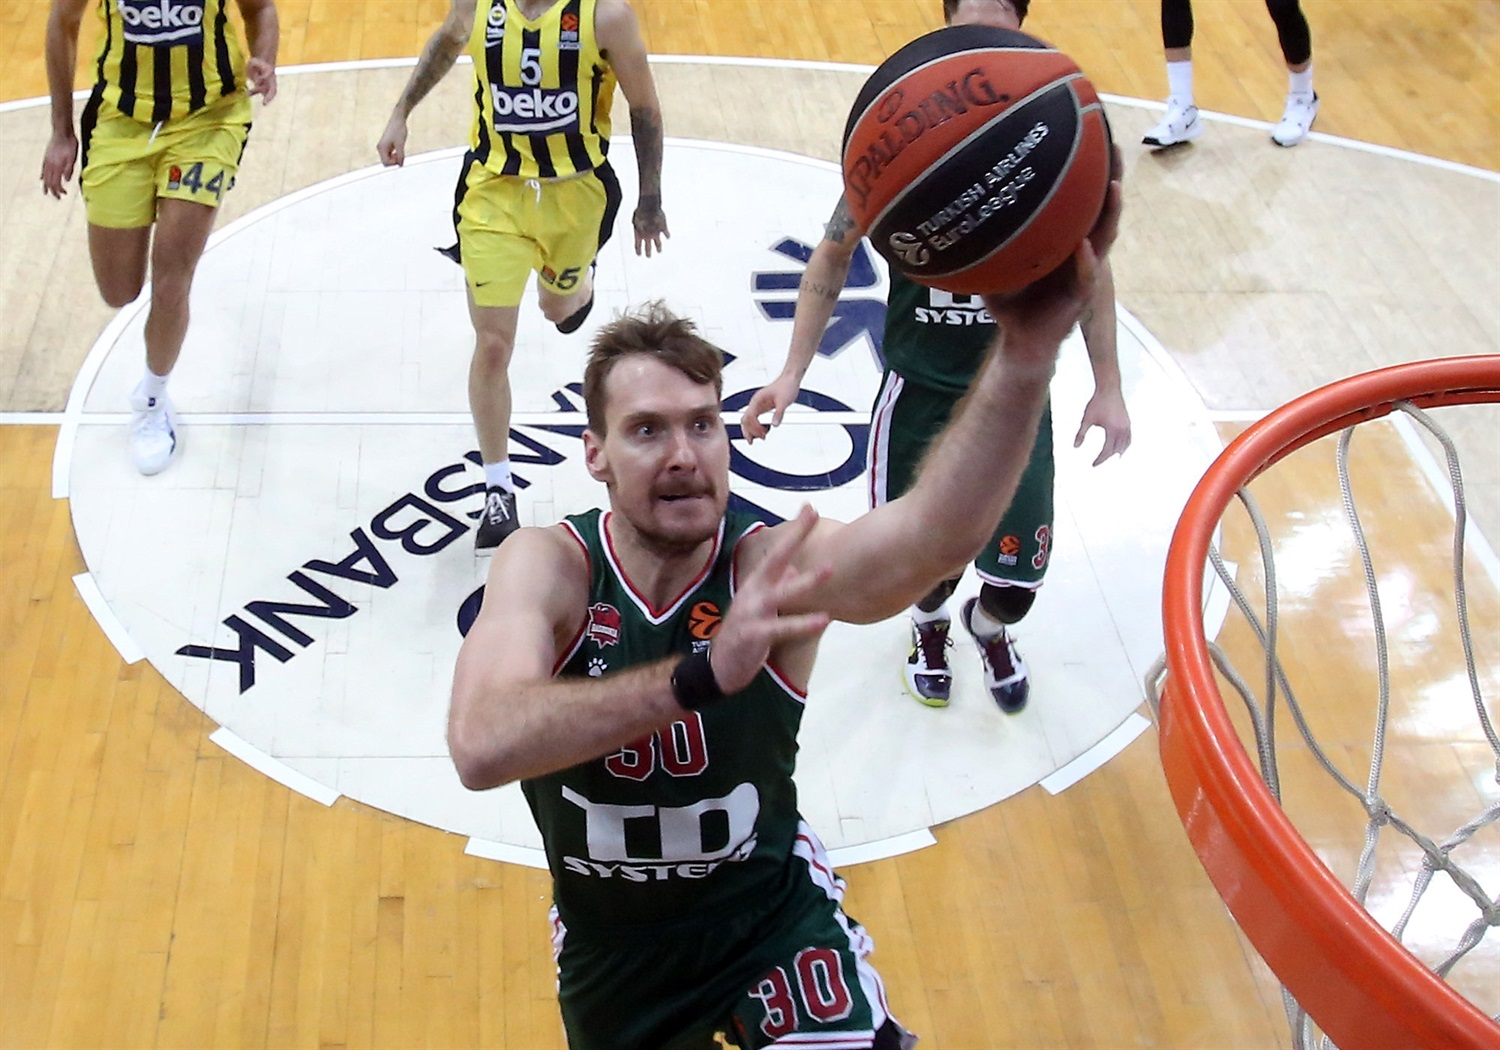 Zoran Dragic - TD Systems Baskonia Vitoria-Gasteiz - EB20